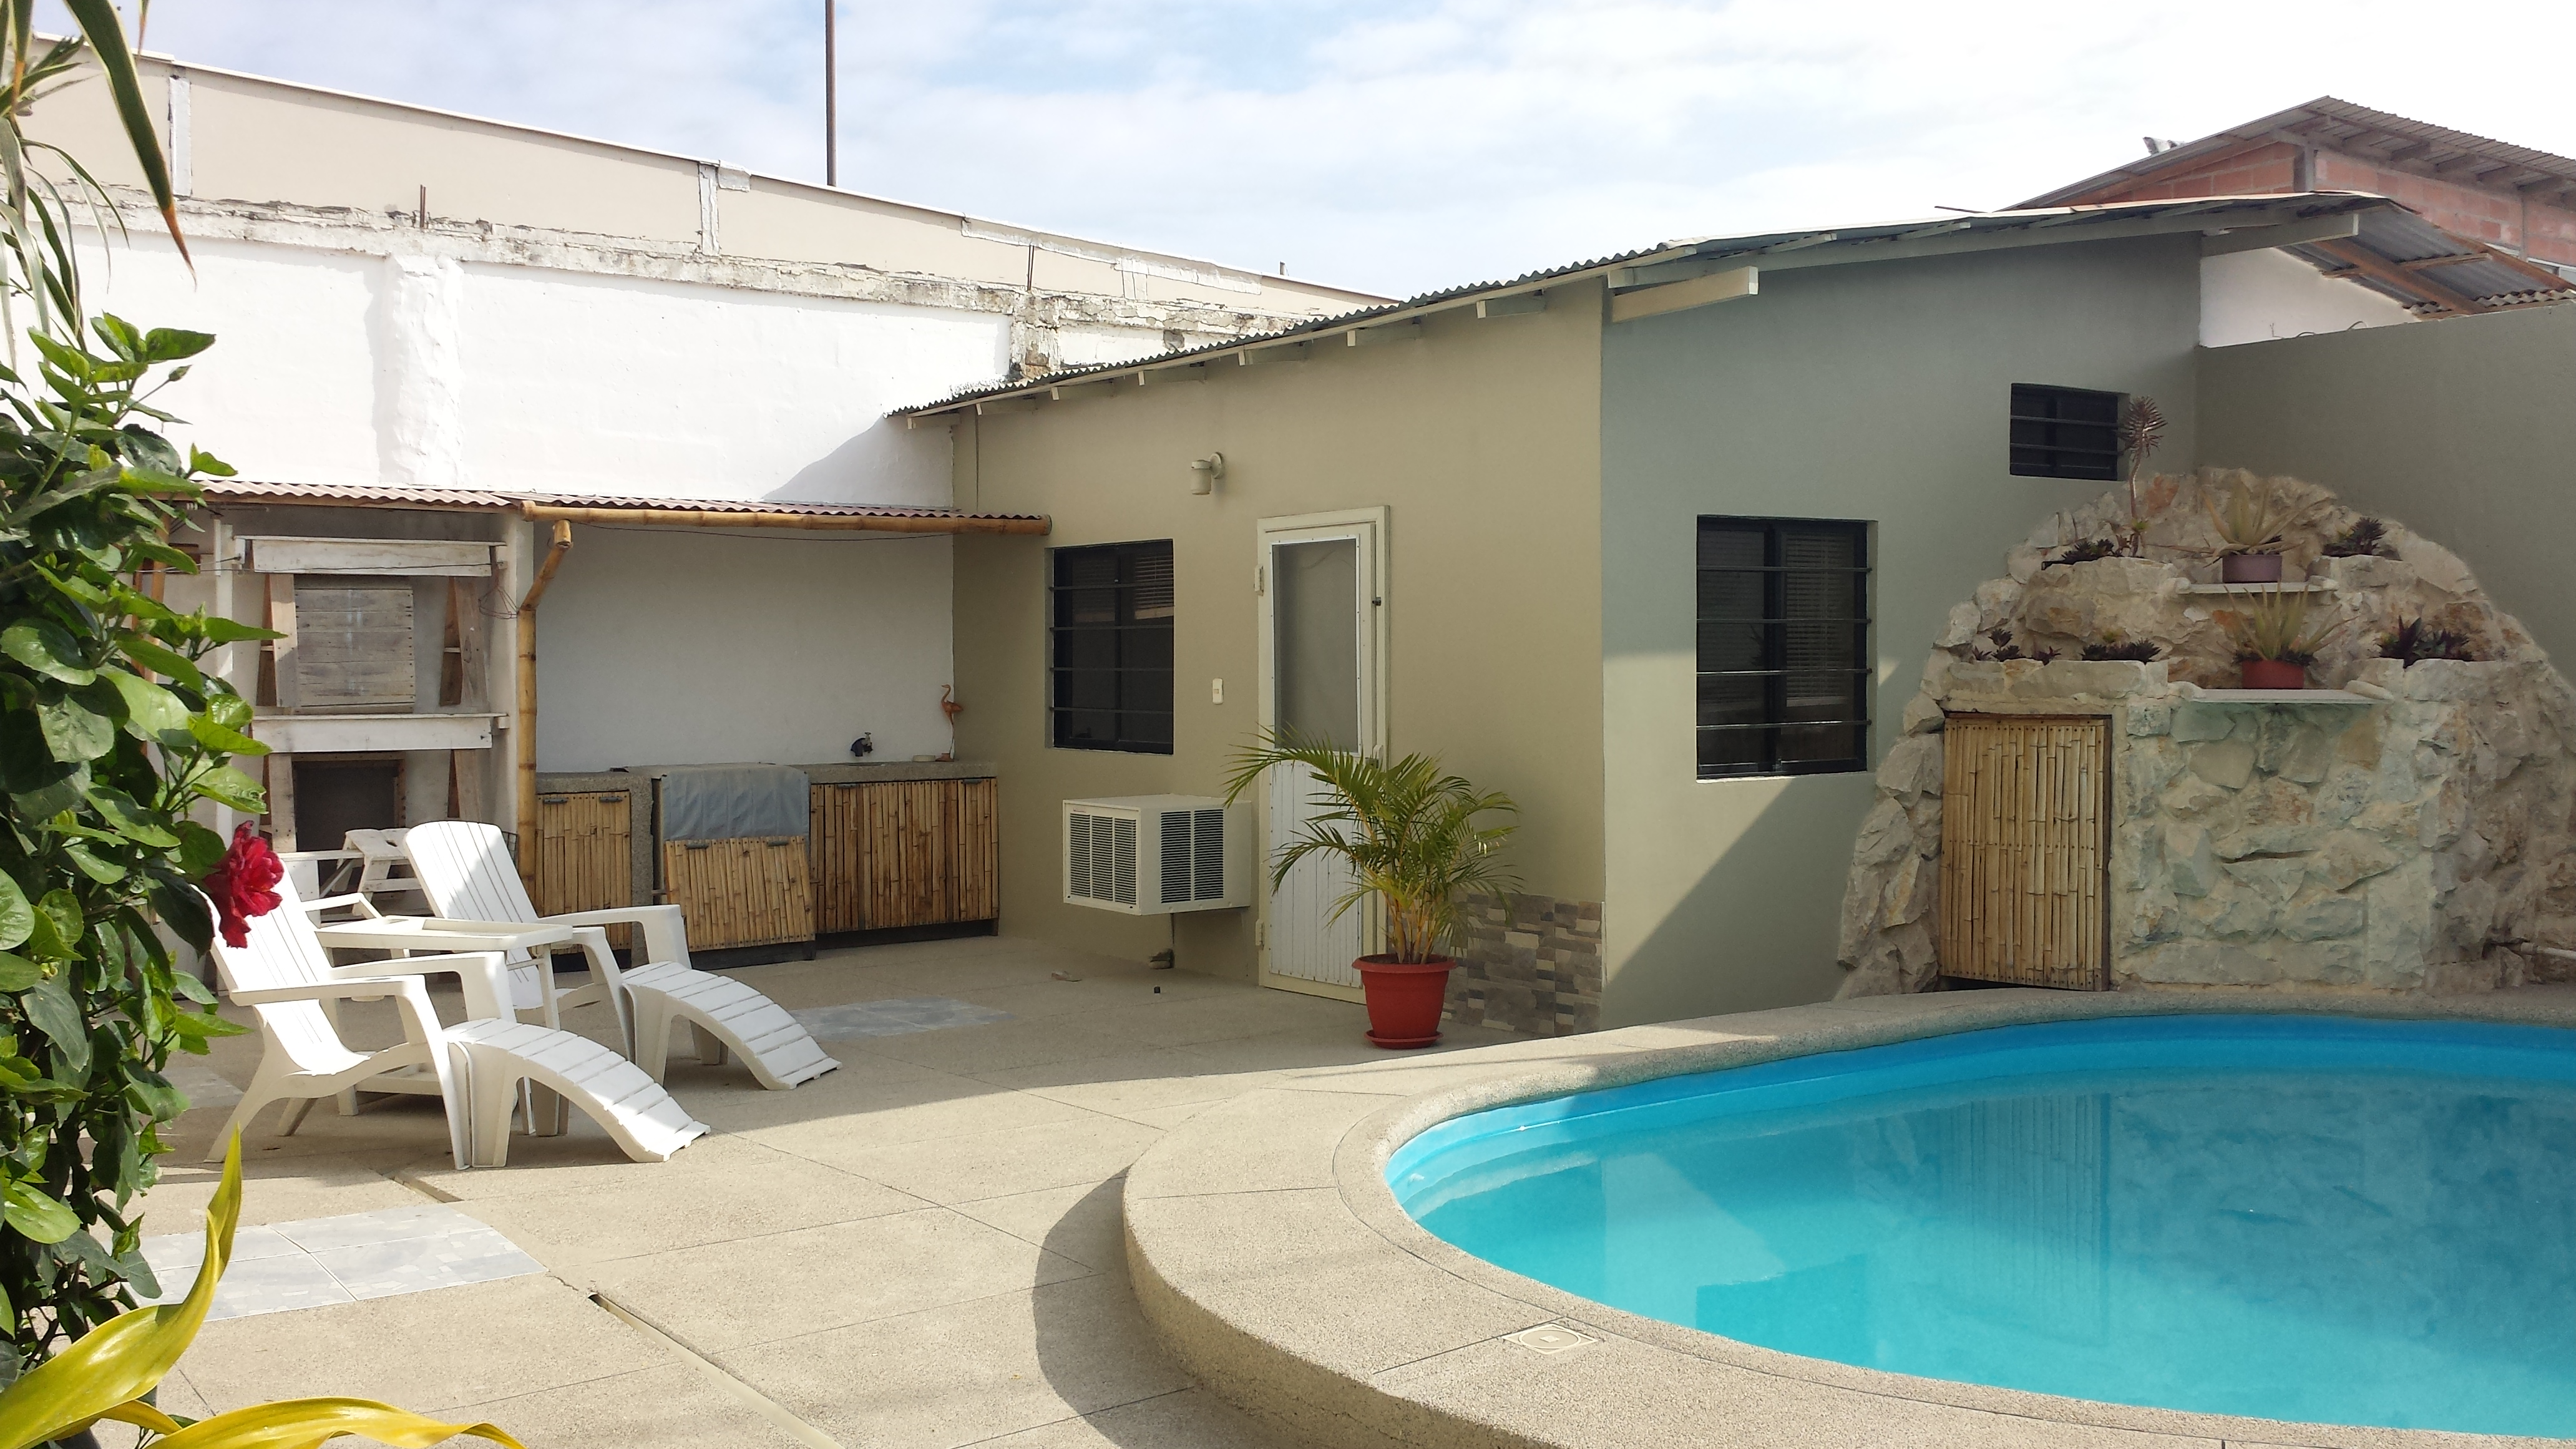 A beautiful completely updated home in the quite community of La Milina